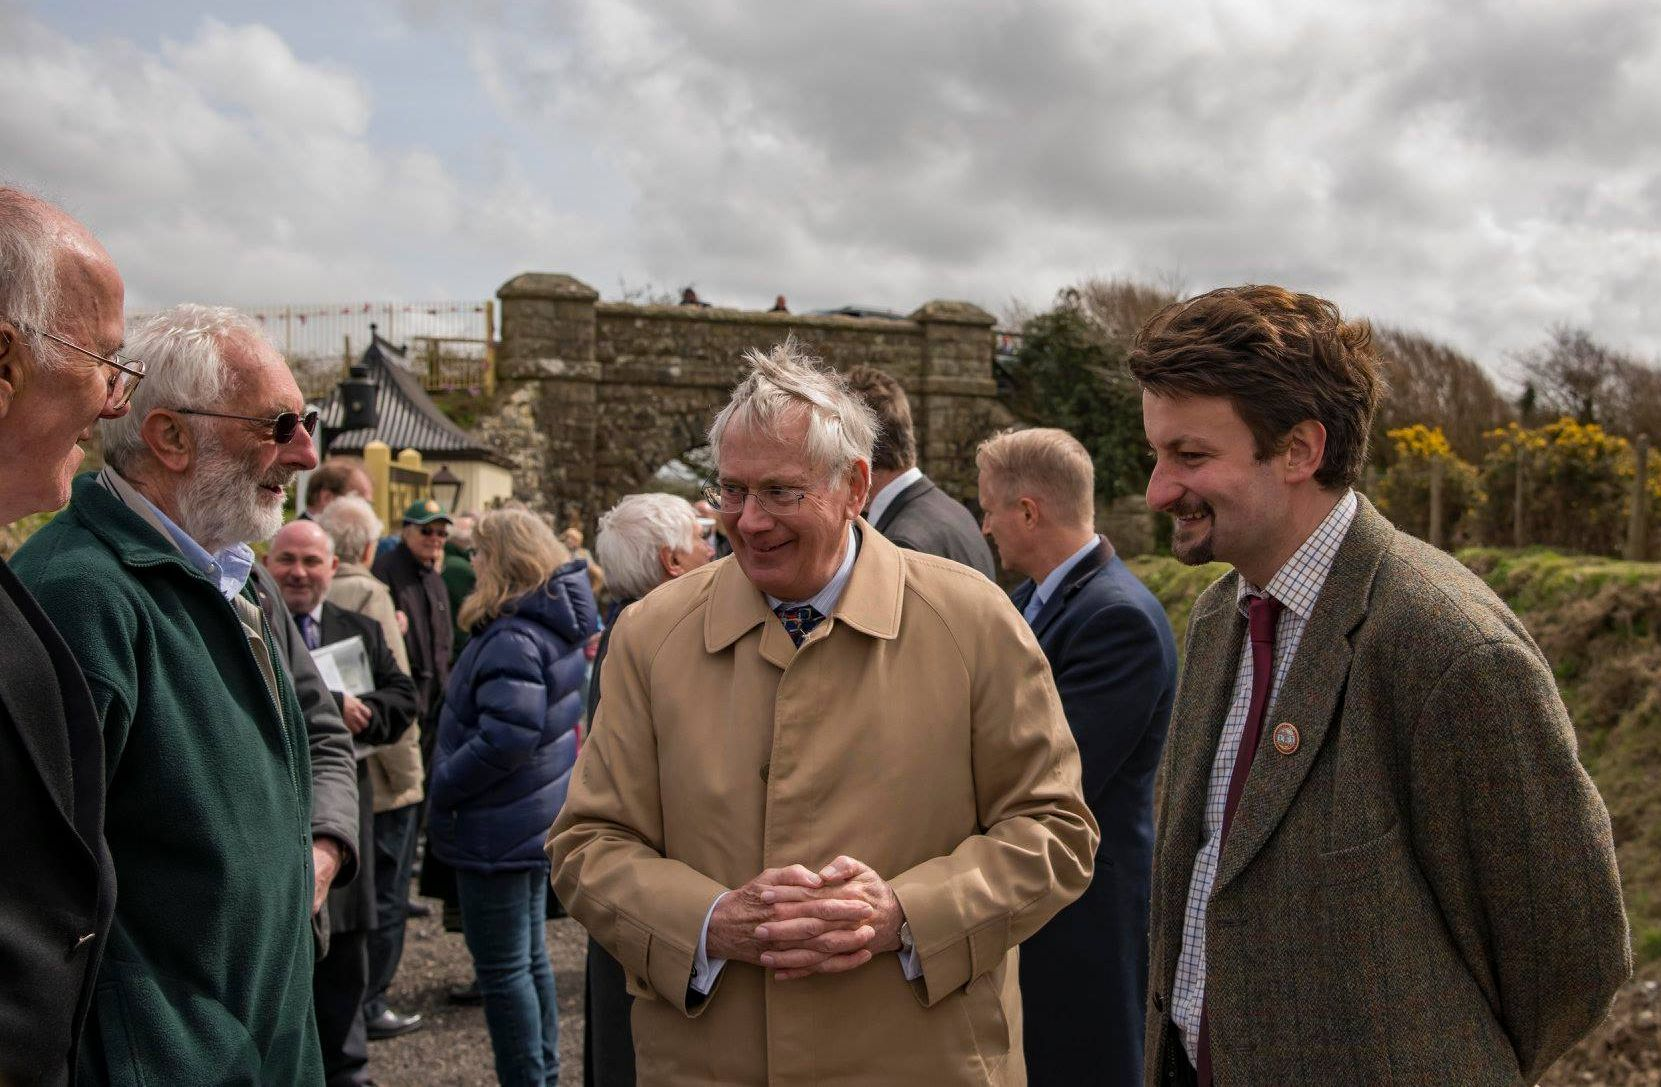 The Duke chats with Alan Burton, Malcolm Lightfoot and James Packman from the railway